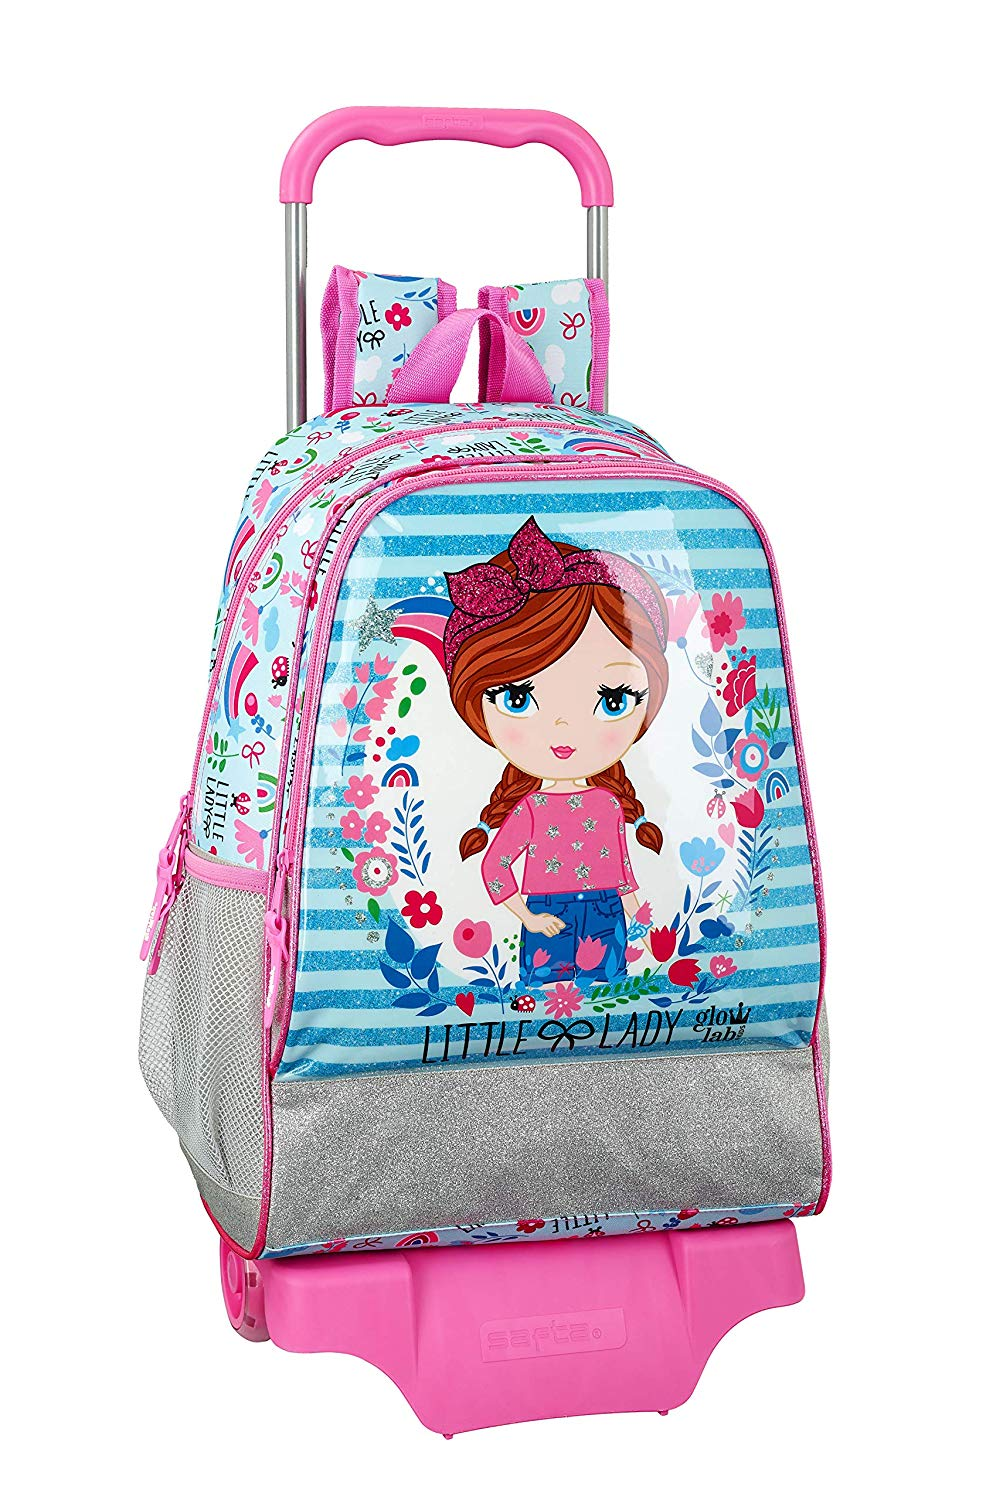 Glowlab Kids Official Children's Backpack, Model 538 with SAFTA Cart 905, 330 x 420 x 140 mm